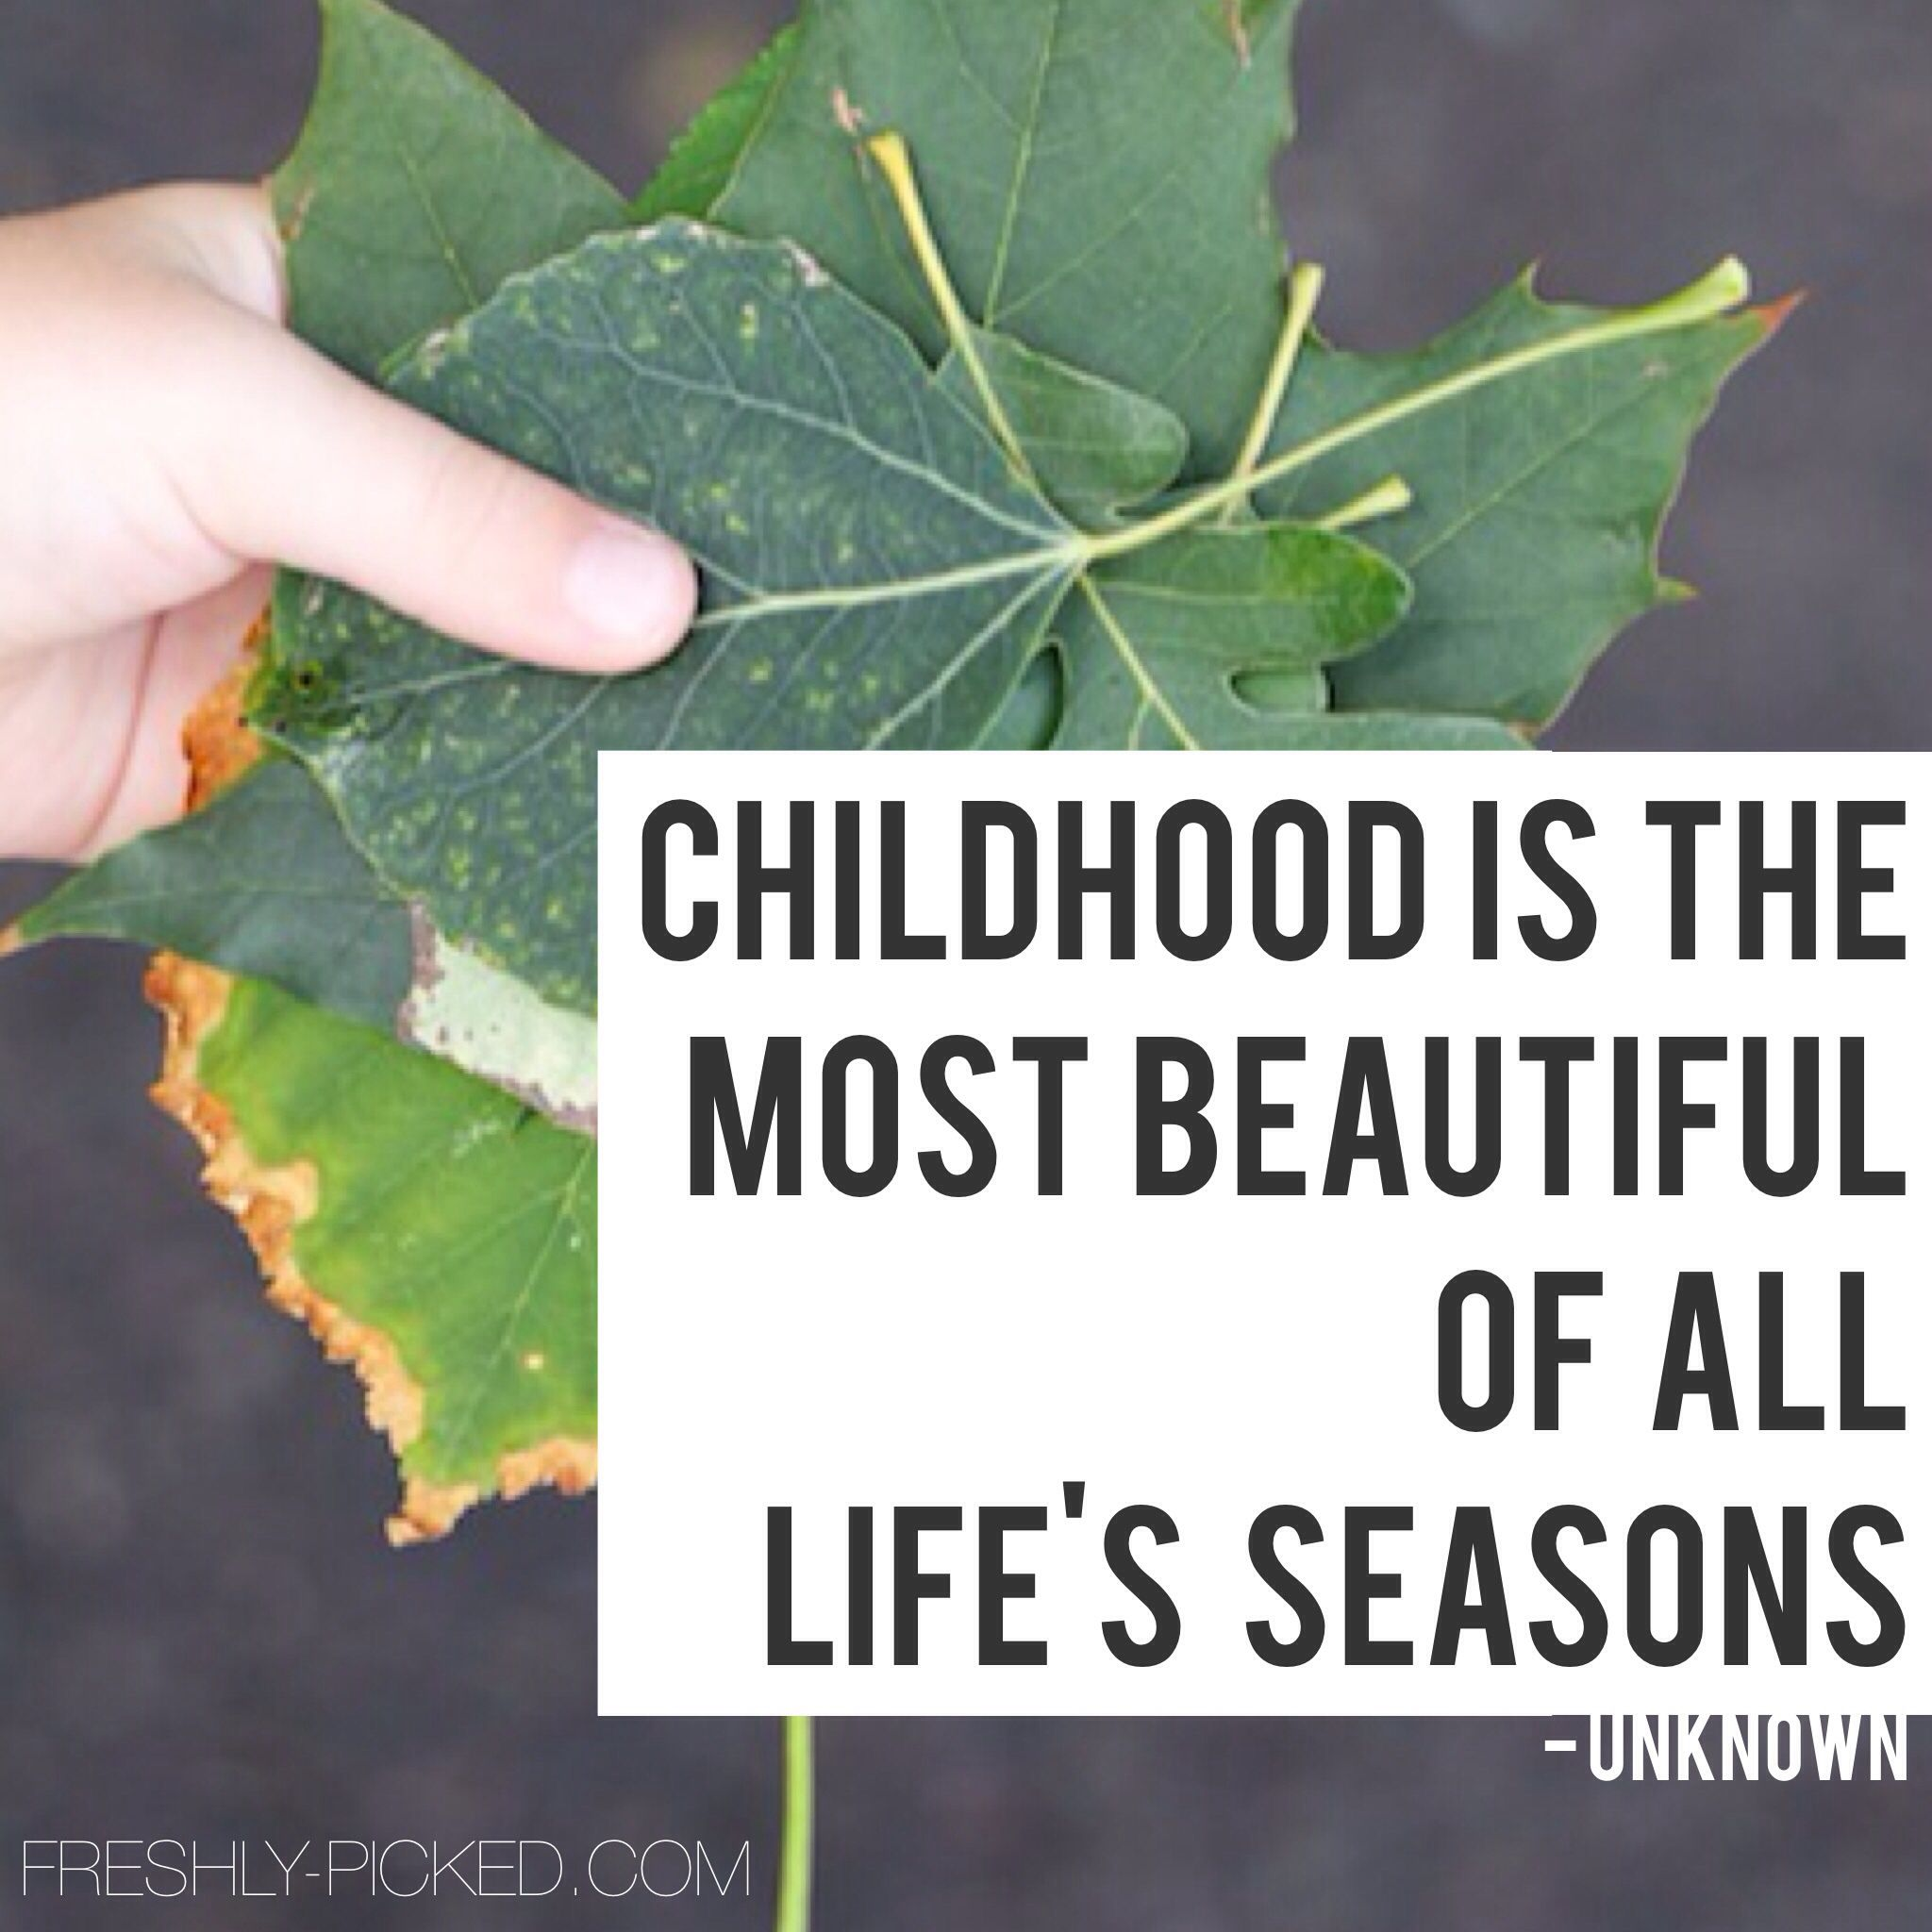 Childhood is the most beautiful of all life's seasons. # ... - photo#14